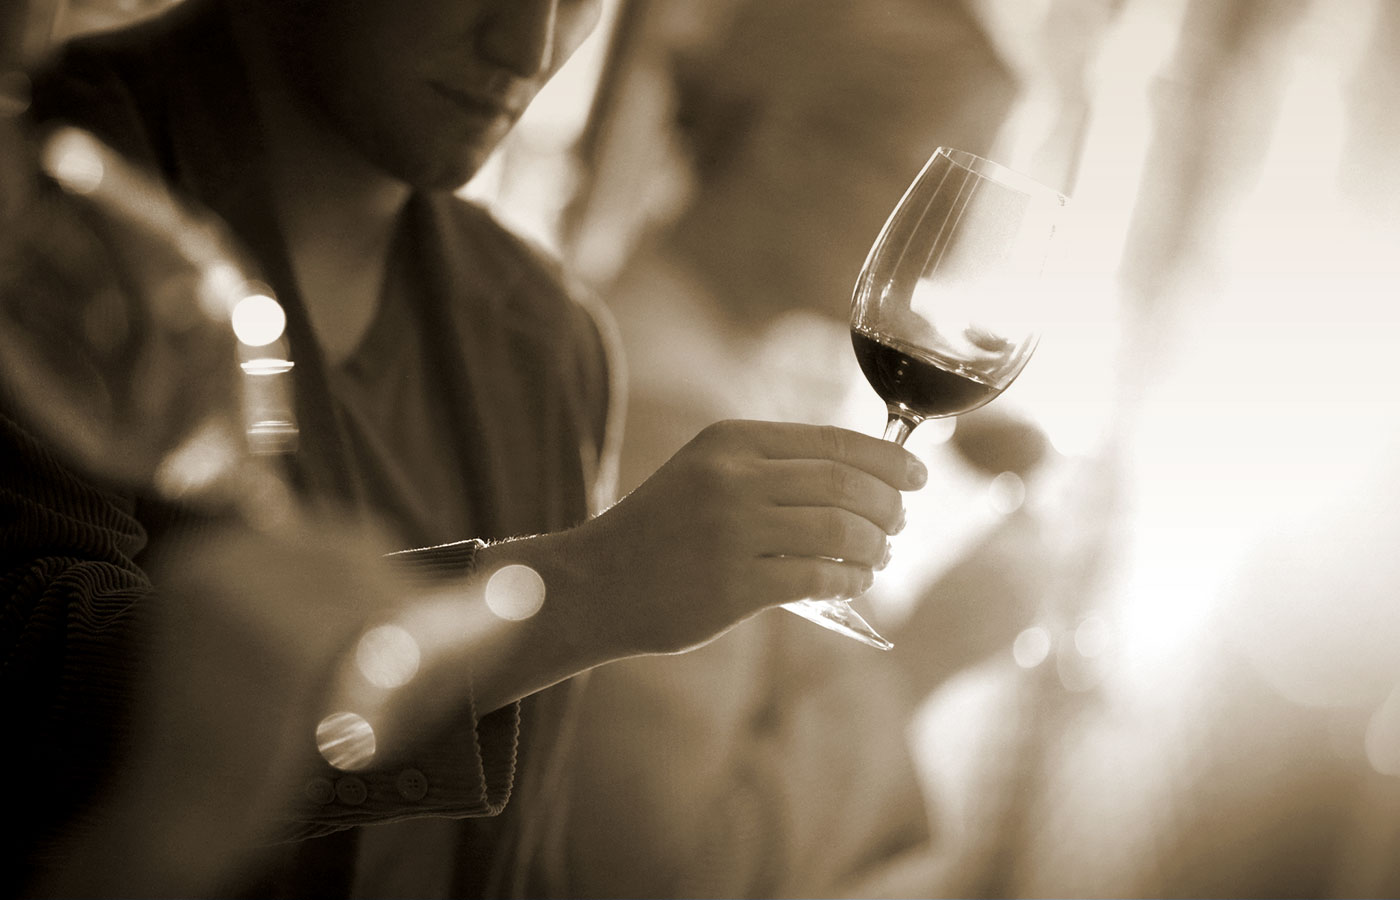 Lifestyle wine photo of man tasting red wine